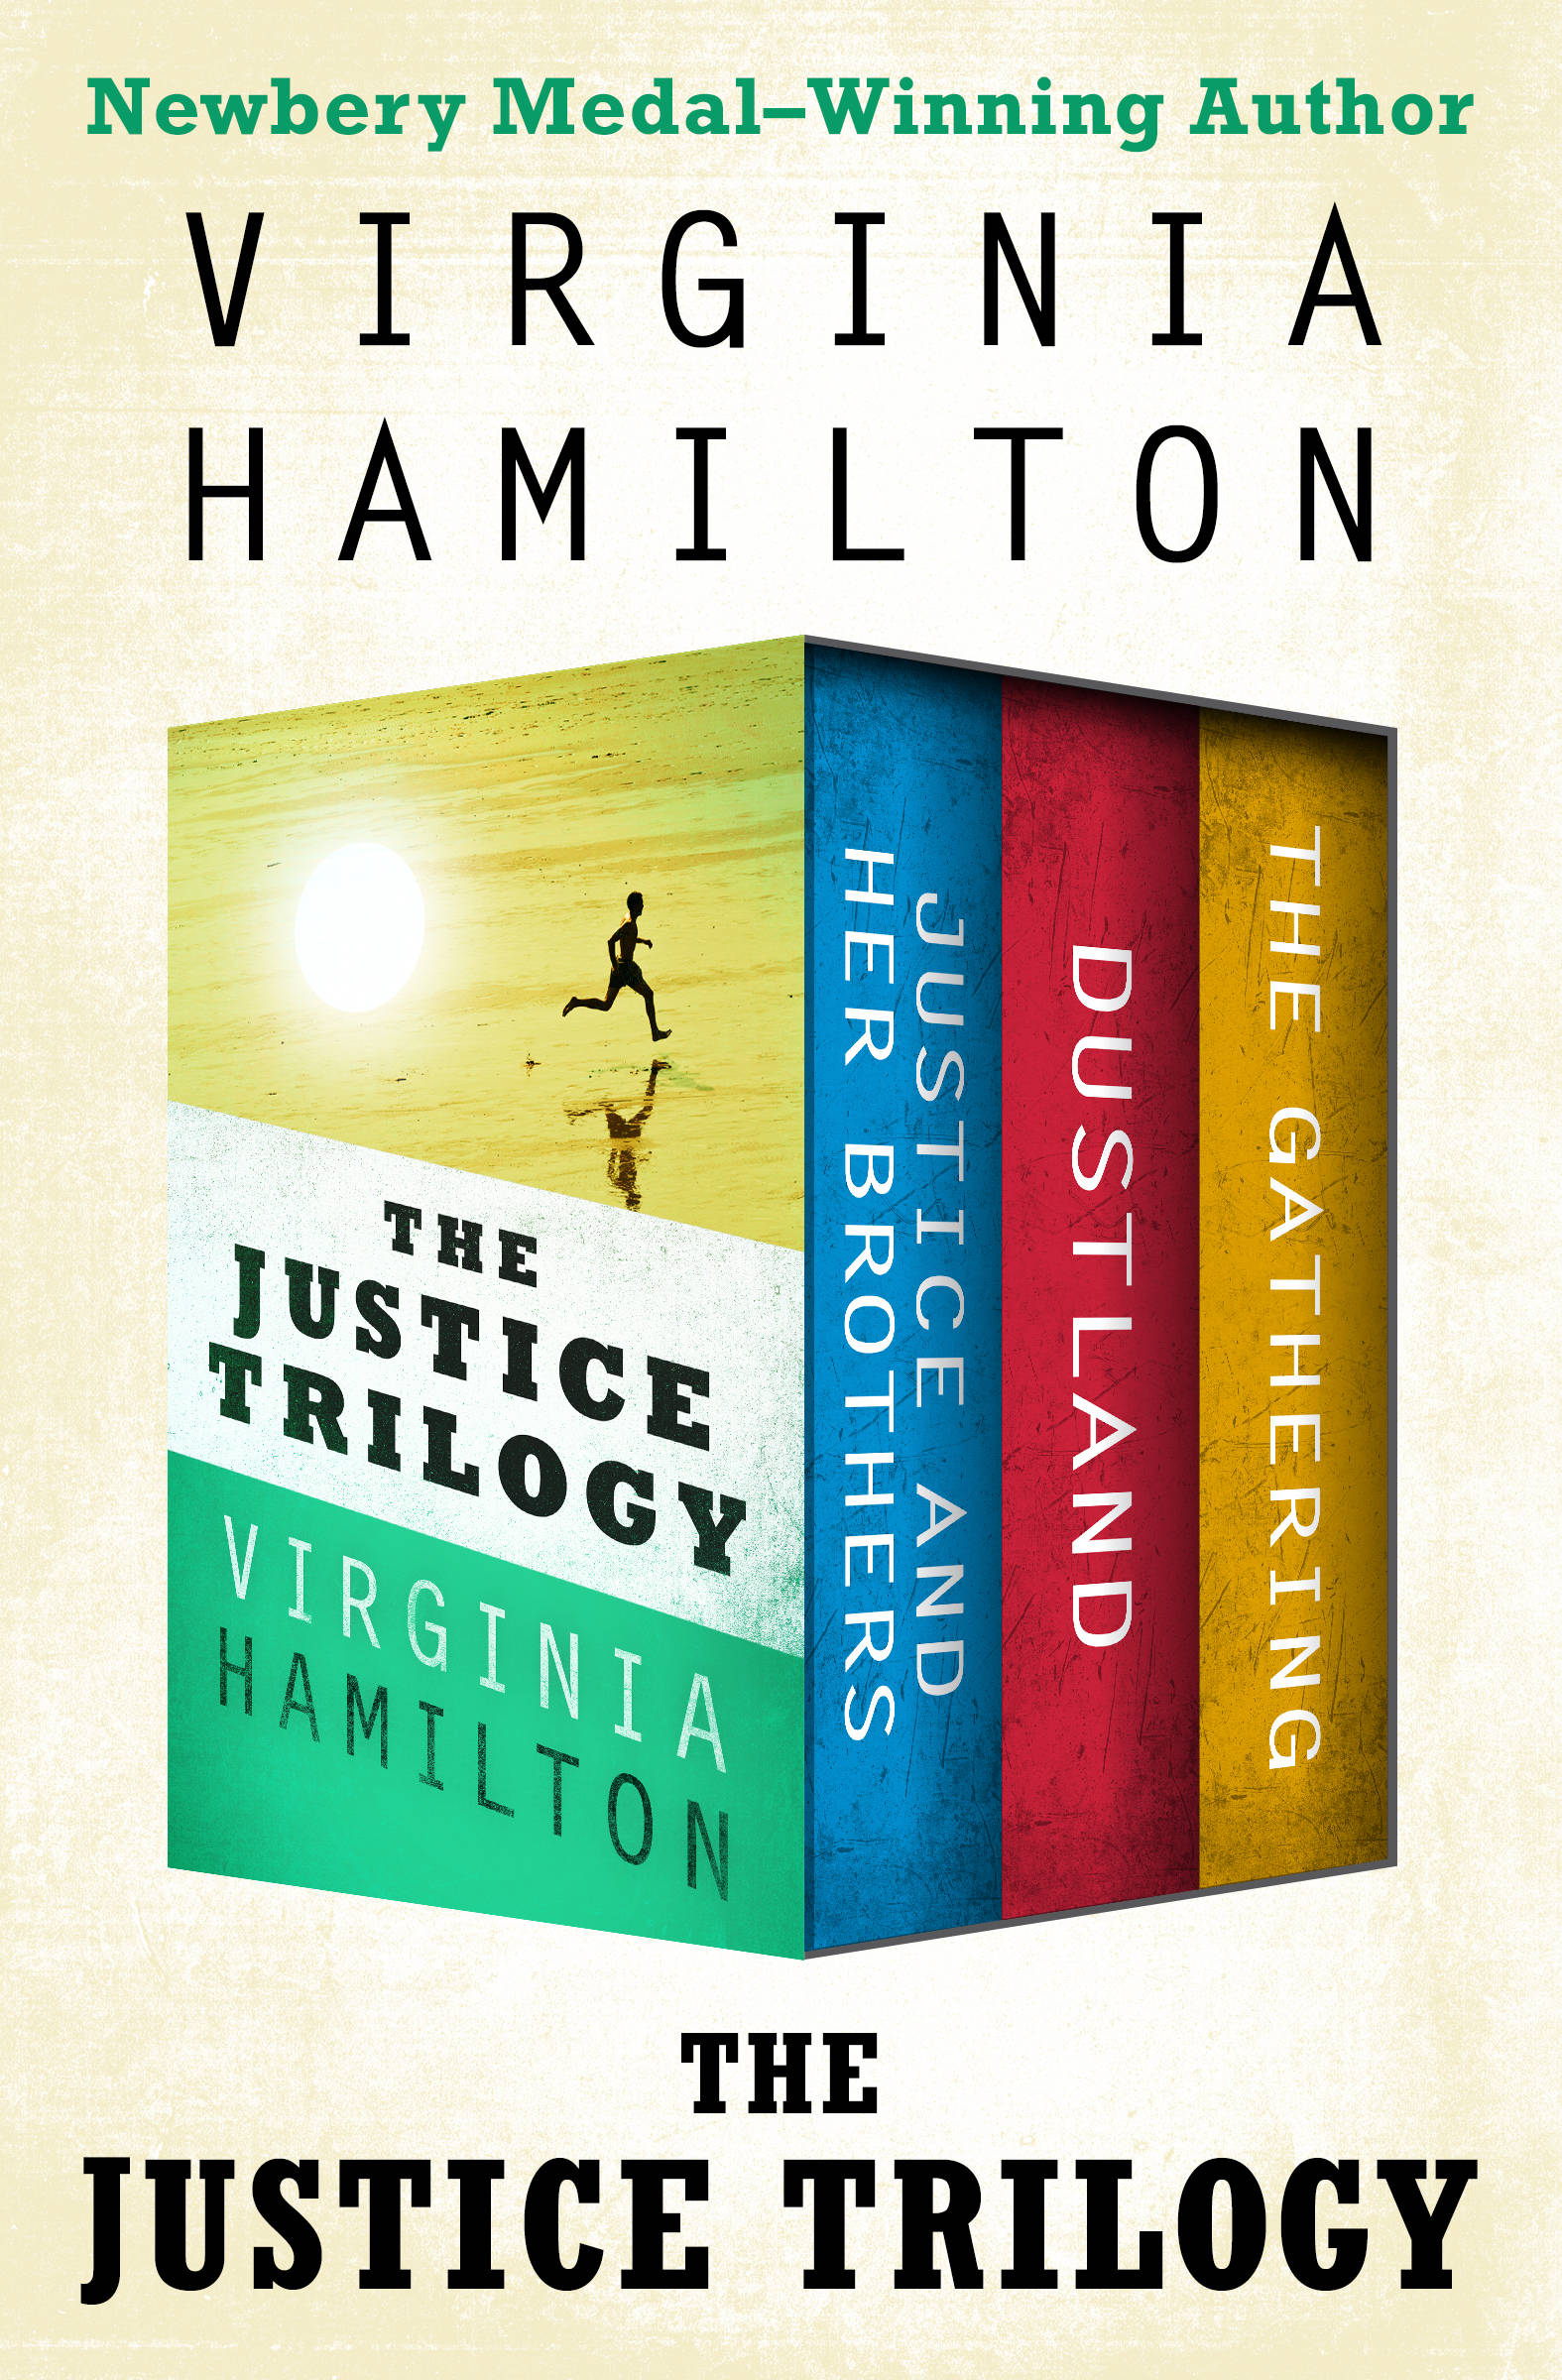 Justice Trilogy